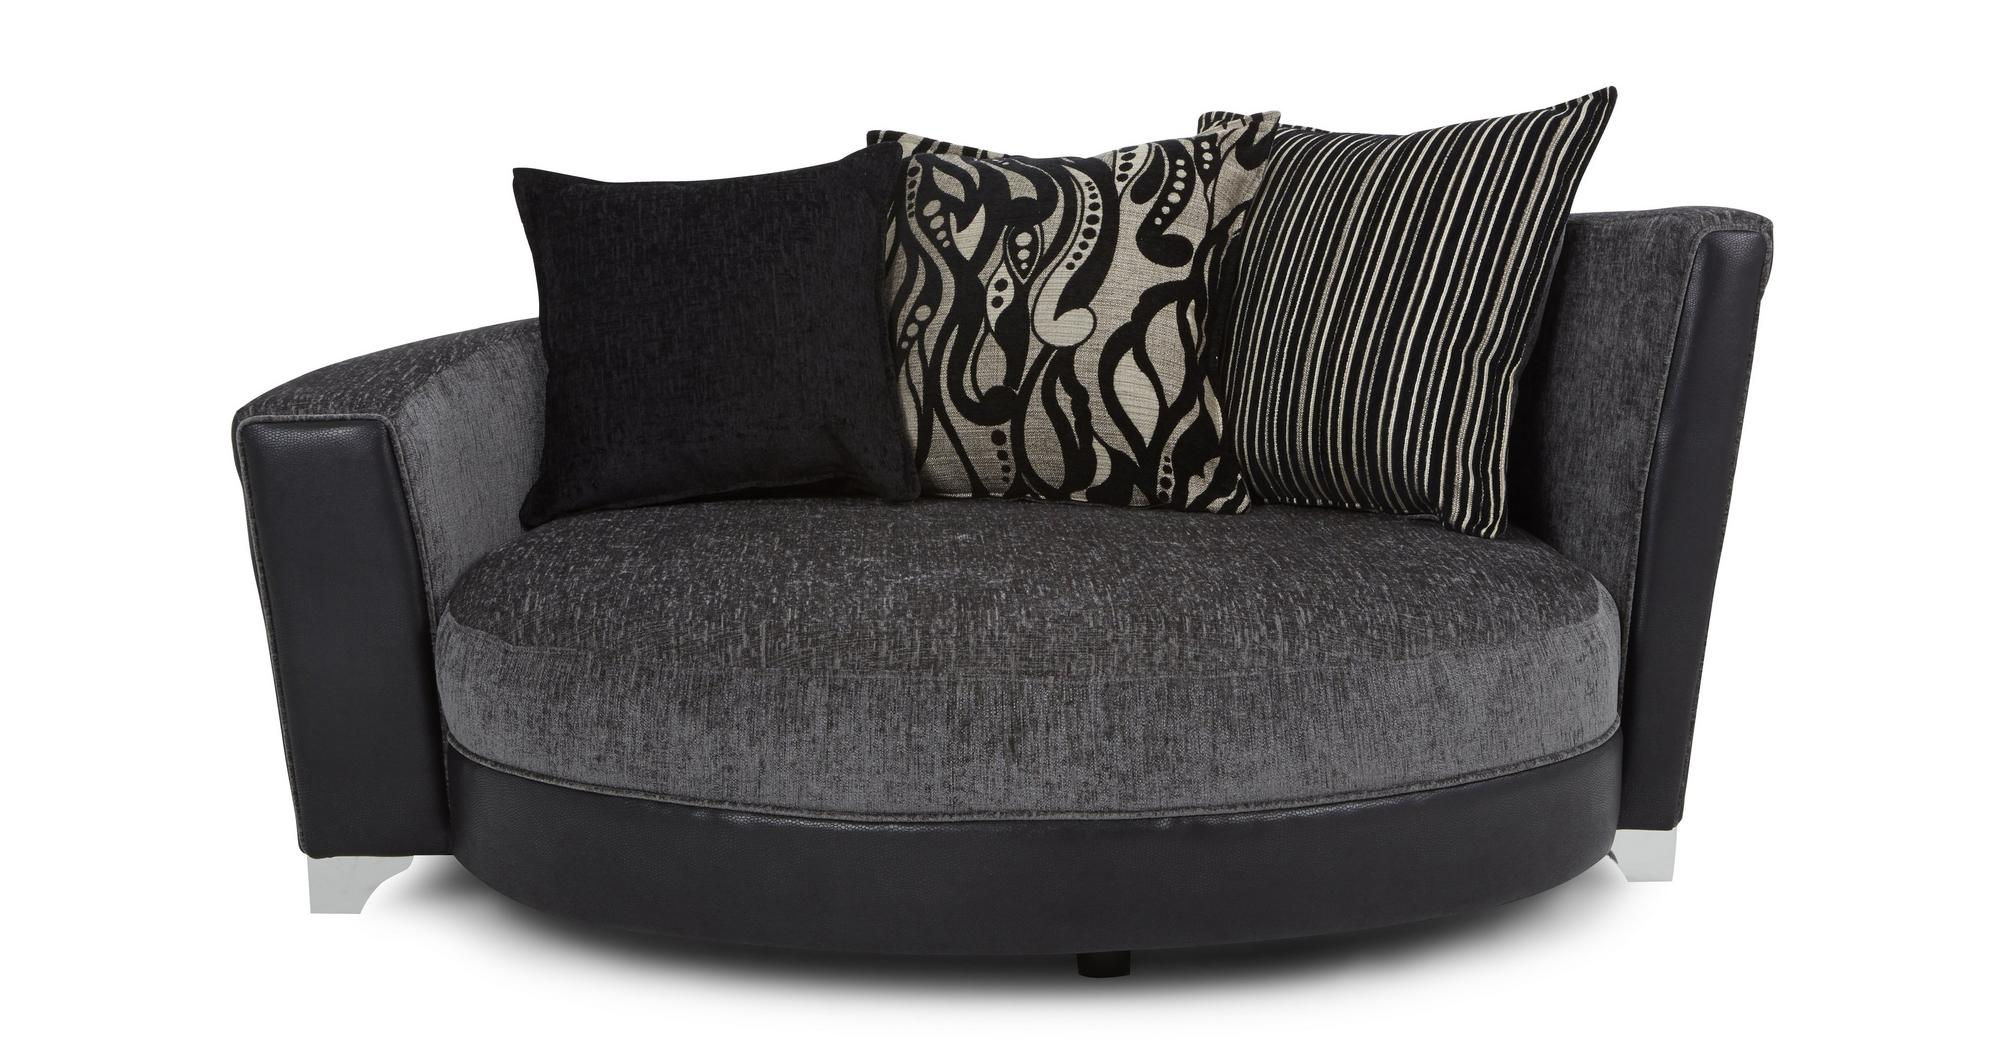 Dfs Helix Charcoal Black Fabric 4 Seater Cuddler Swivel